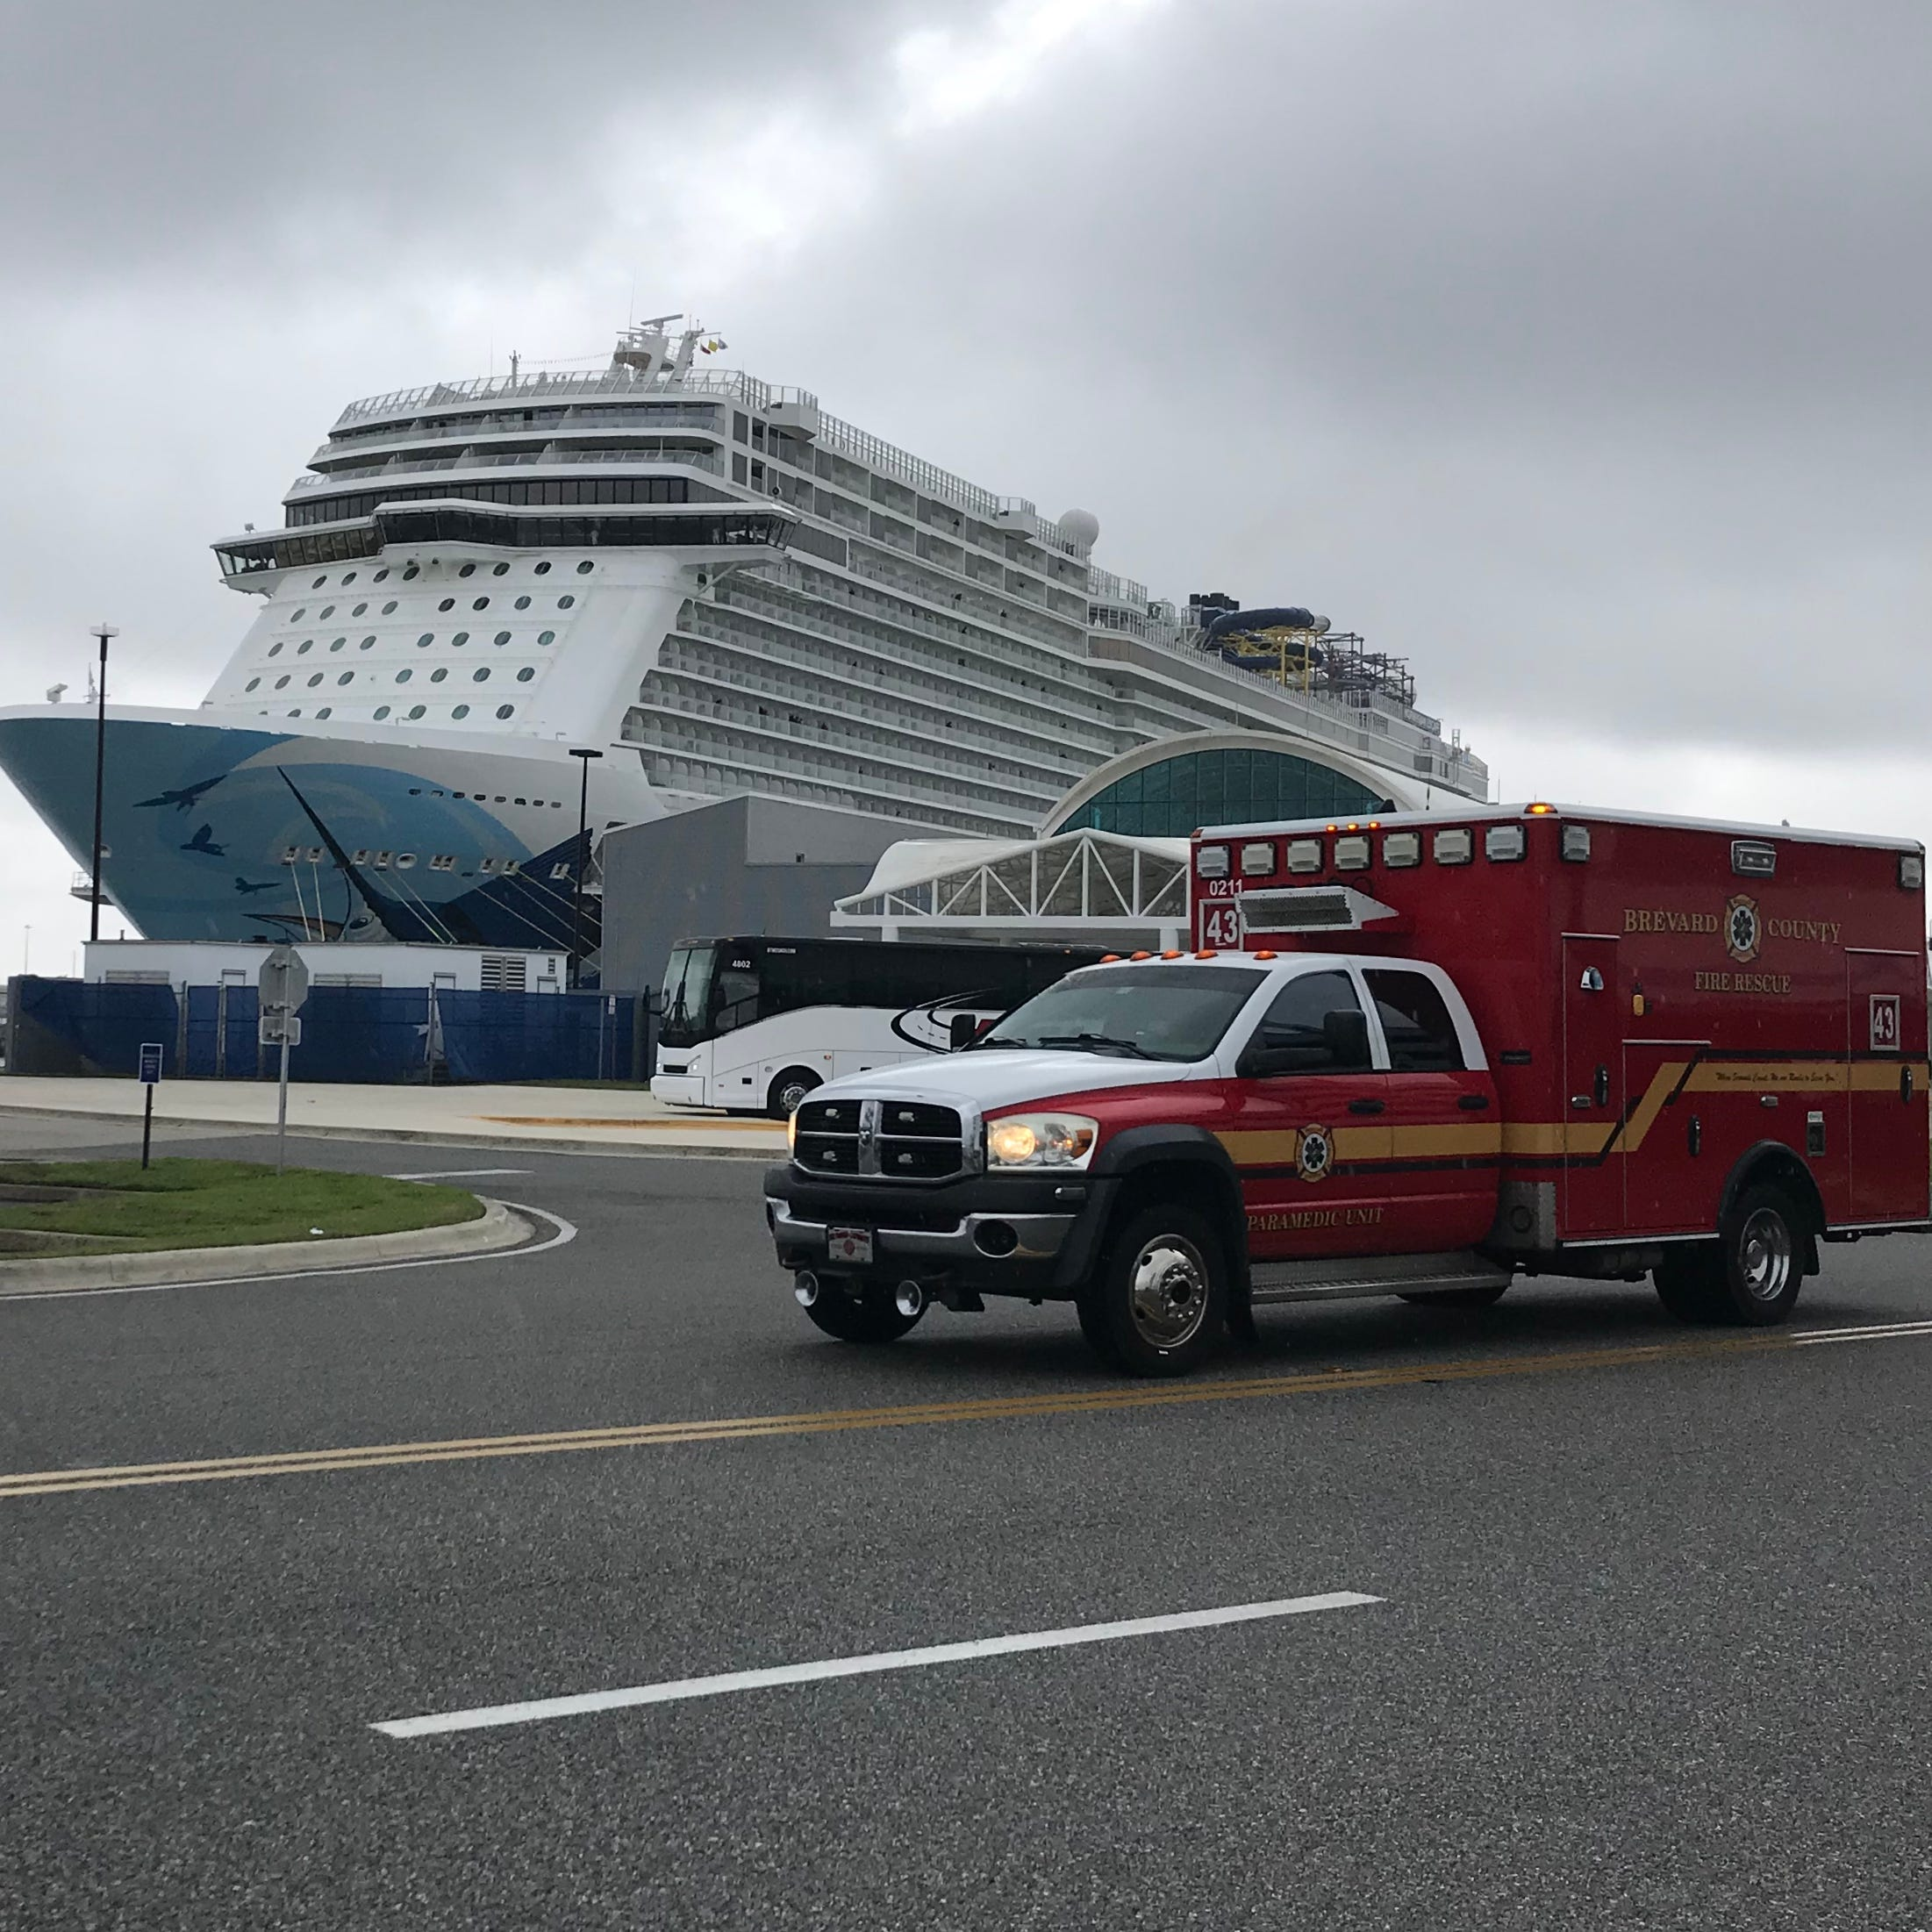 115 mph 'extreme' wind slams into Norwegian cruise ship, injuring passengers and crew